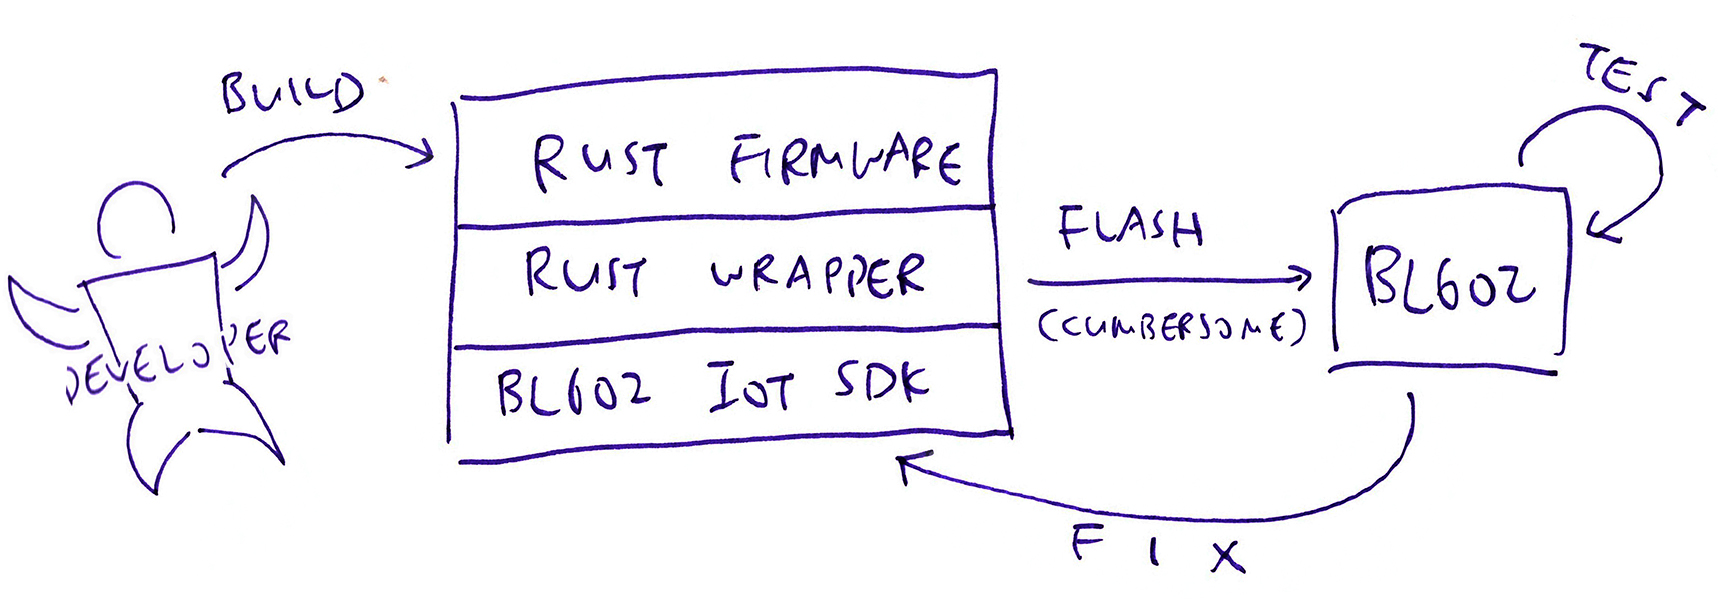 Rust Firmware for BL602